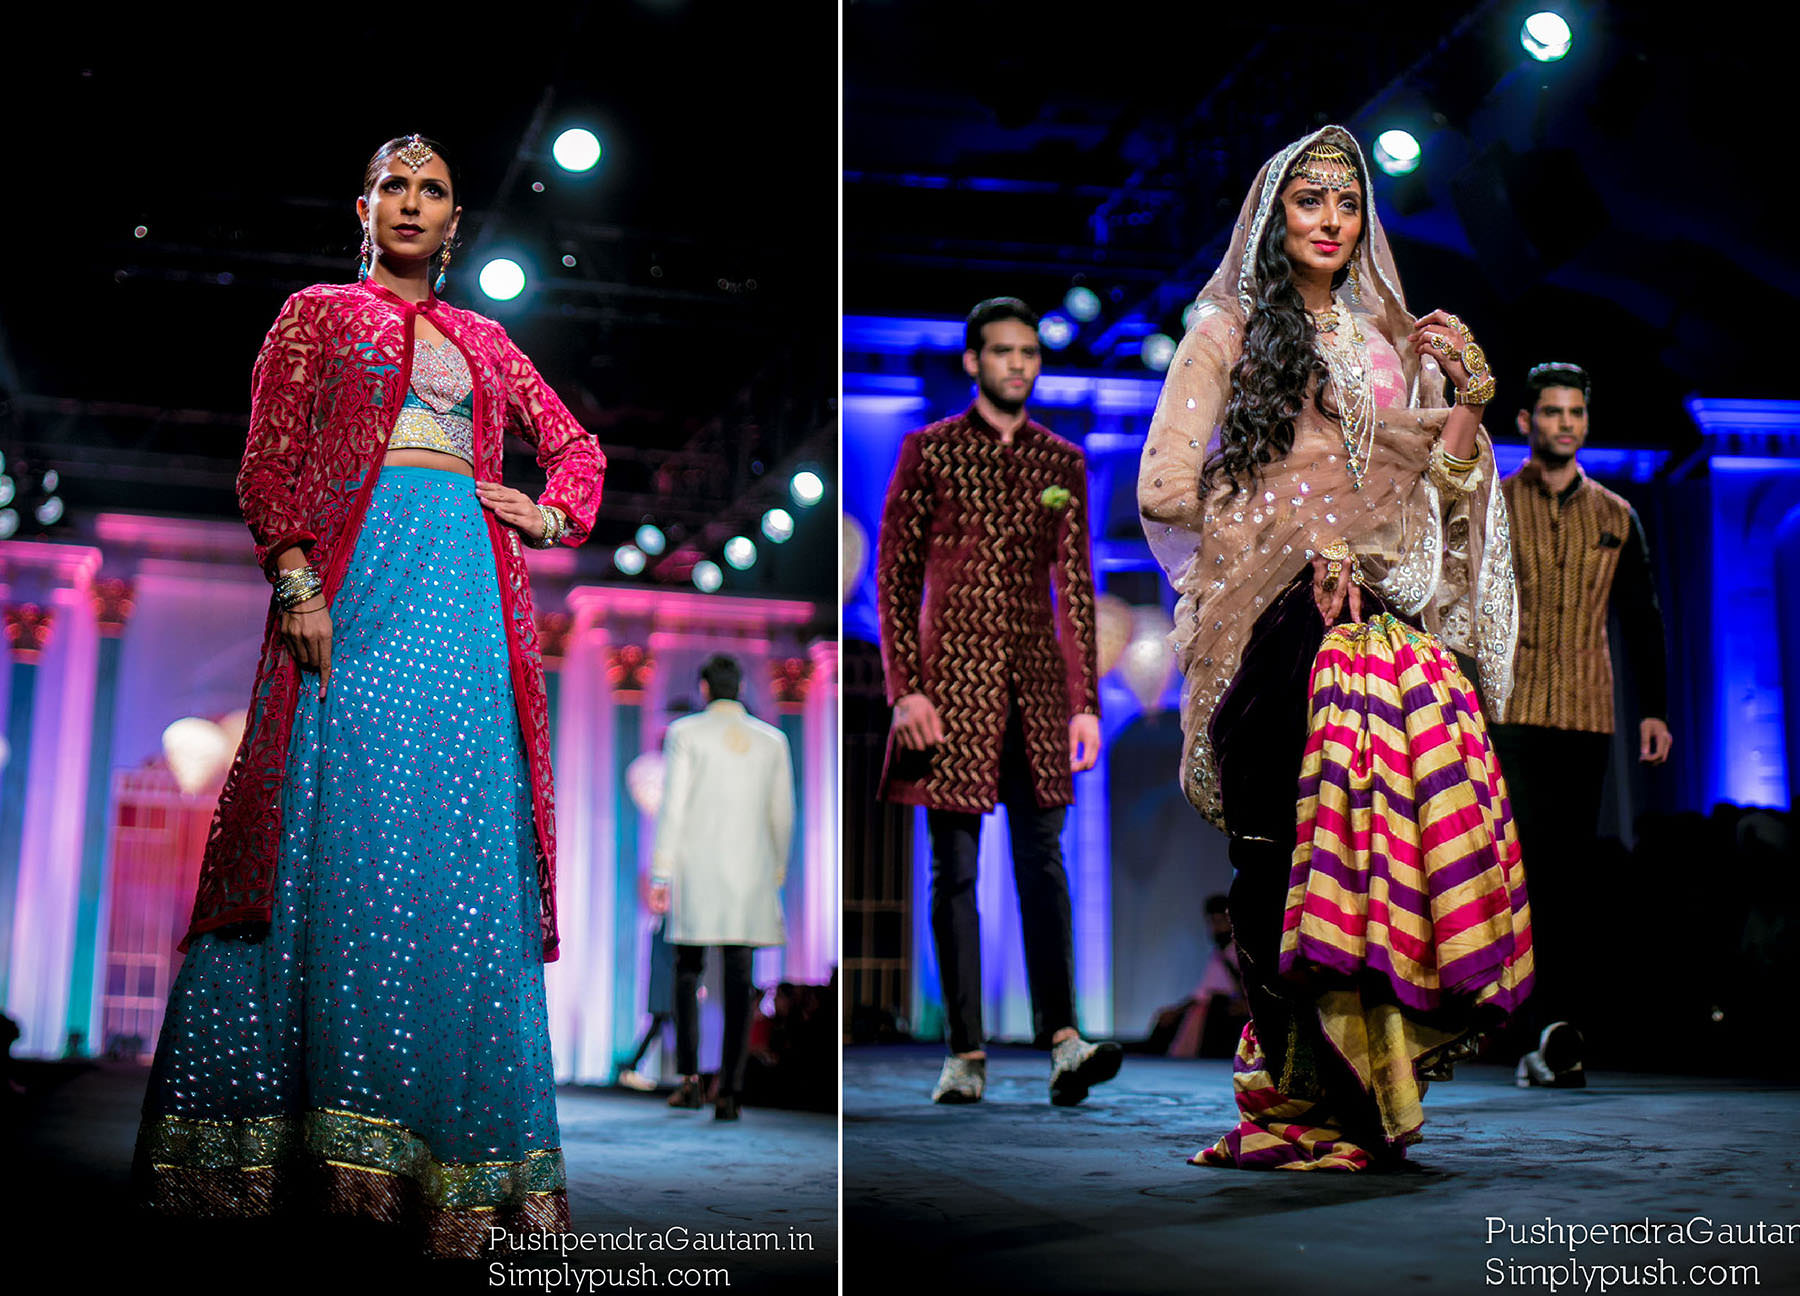 Meera-Muzaffar-Ali-collection-pics-bridal-fashion-week-delhi-by-india-best-event-travel-lifestyle-photographer-pushpendra-gautam